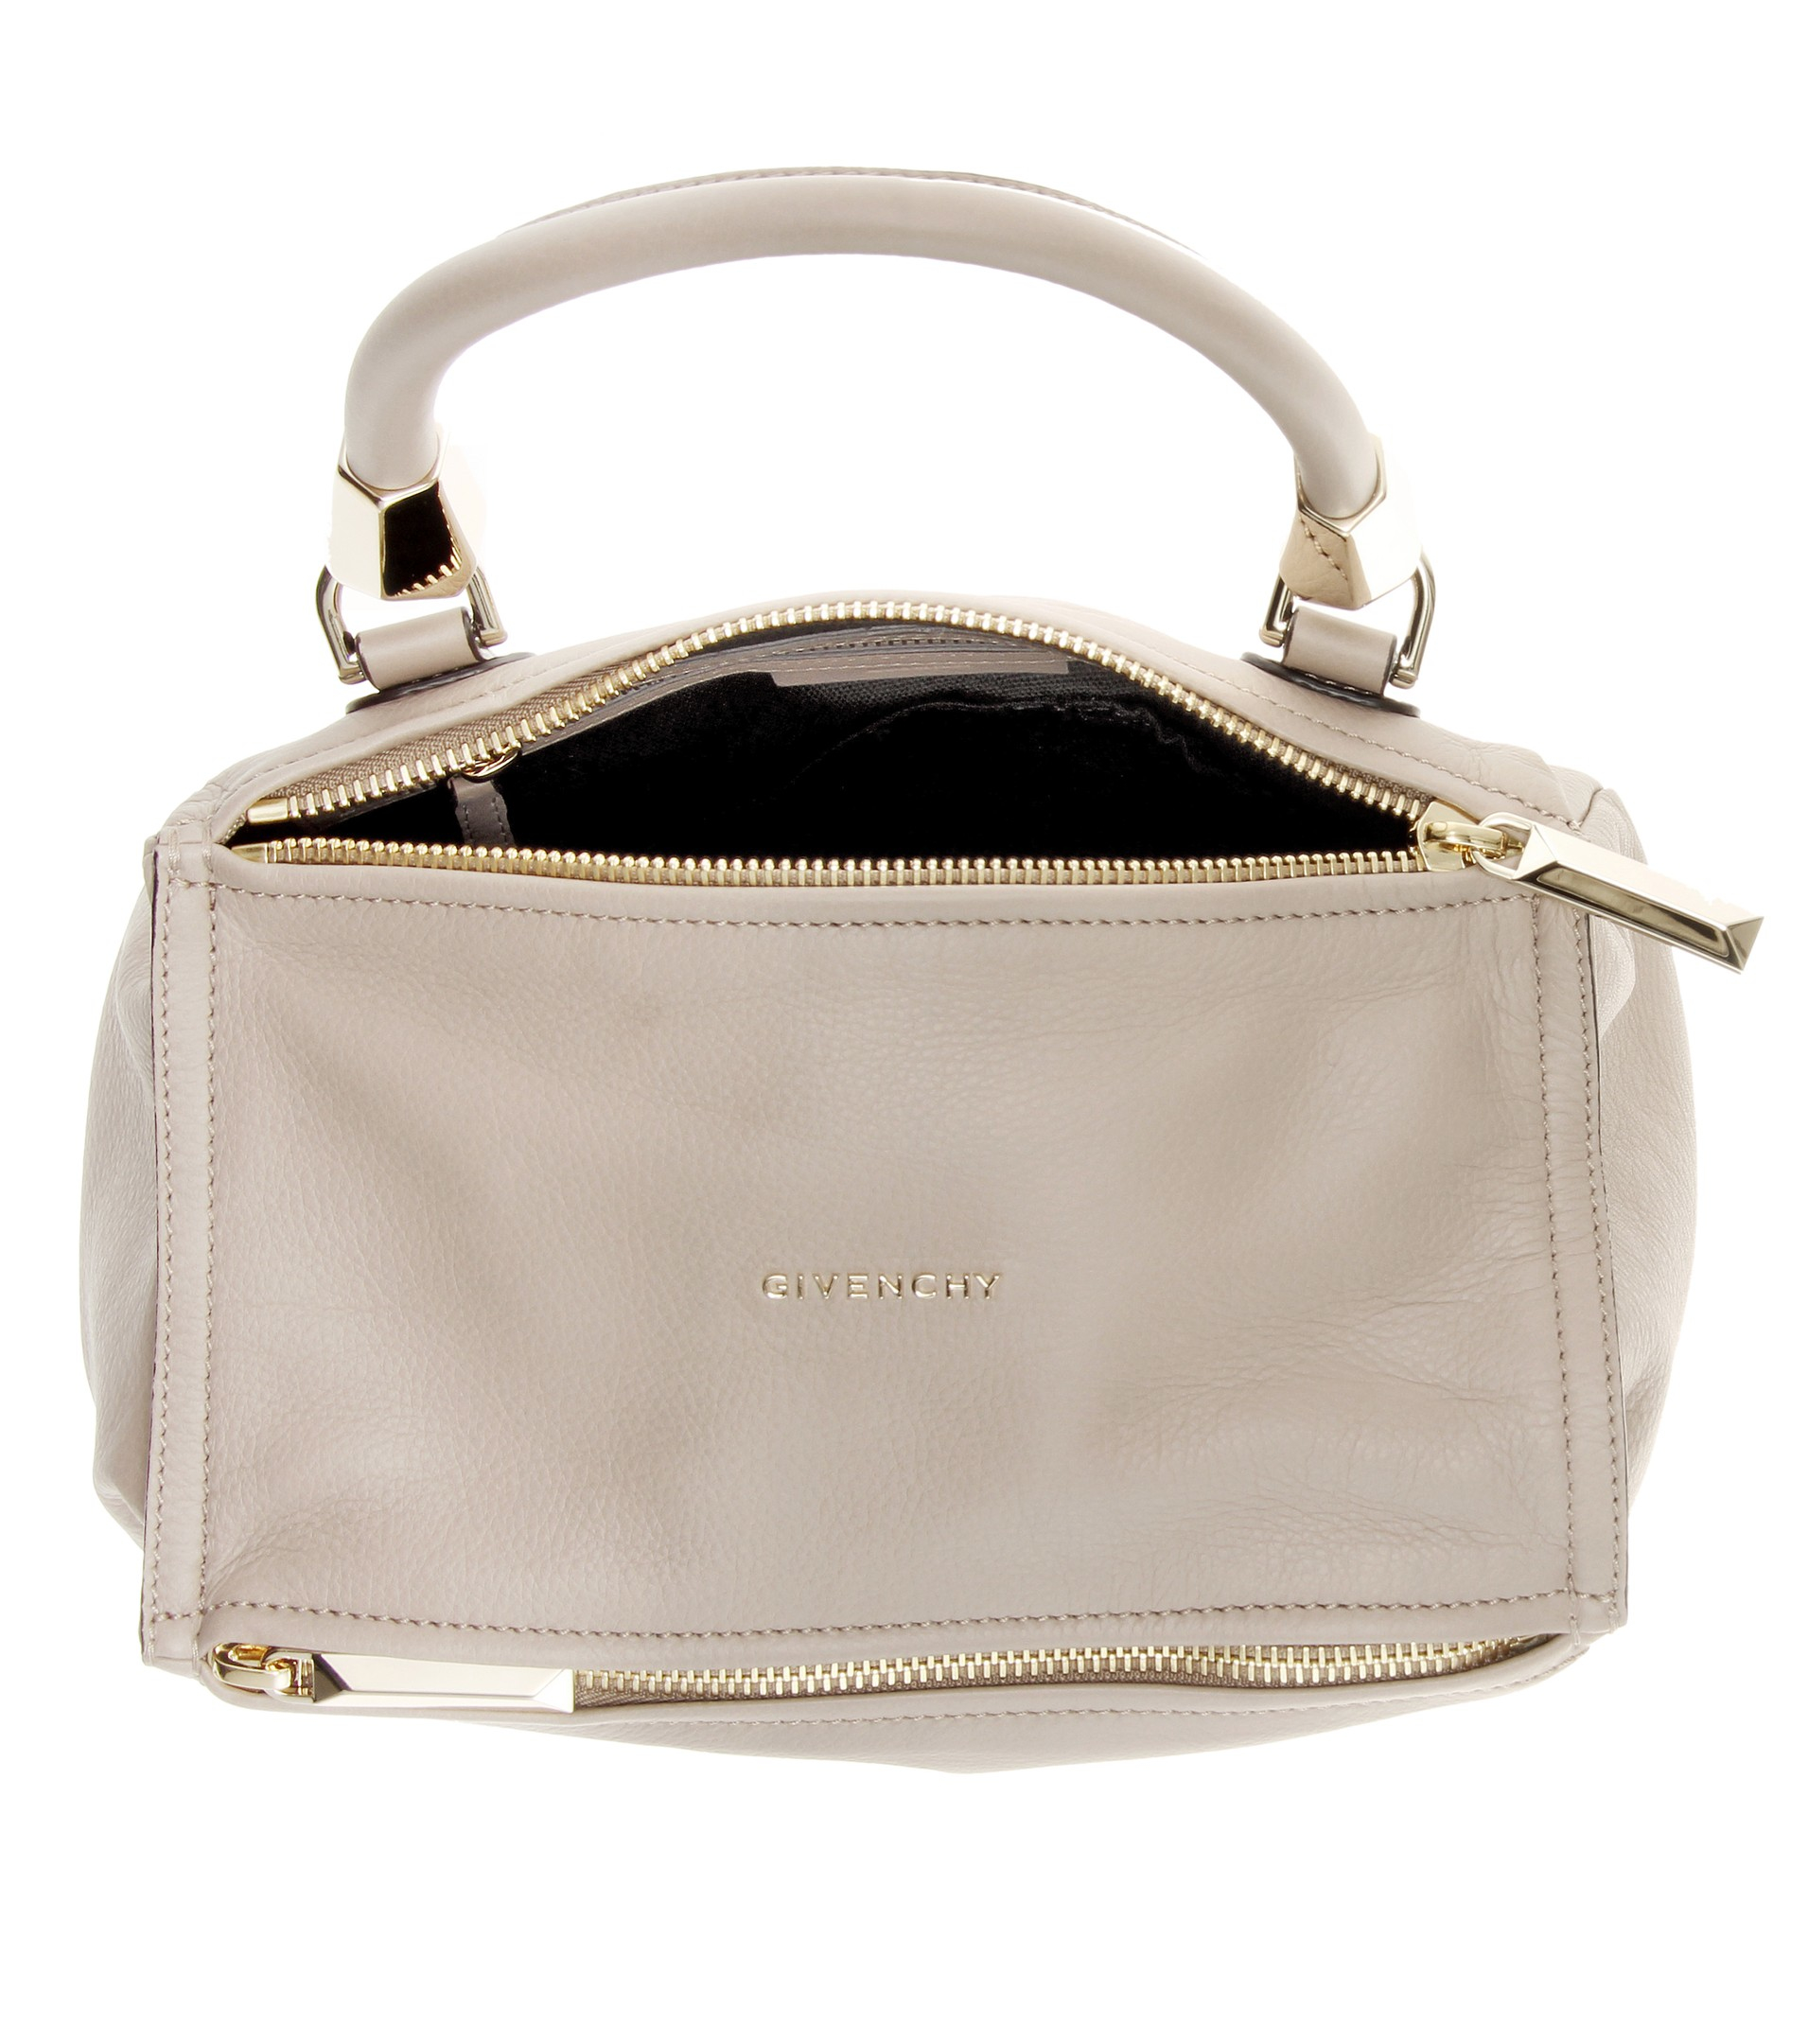 886c7dc64923 givenchy handbags online - Givenchy Pandora Small Leather Shoulder Bag in  Gray (Linen)